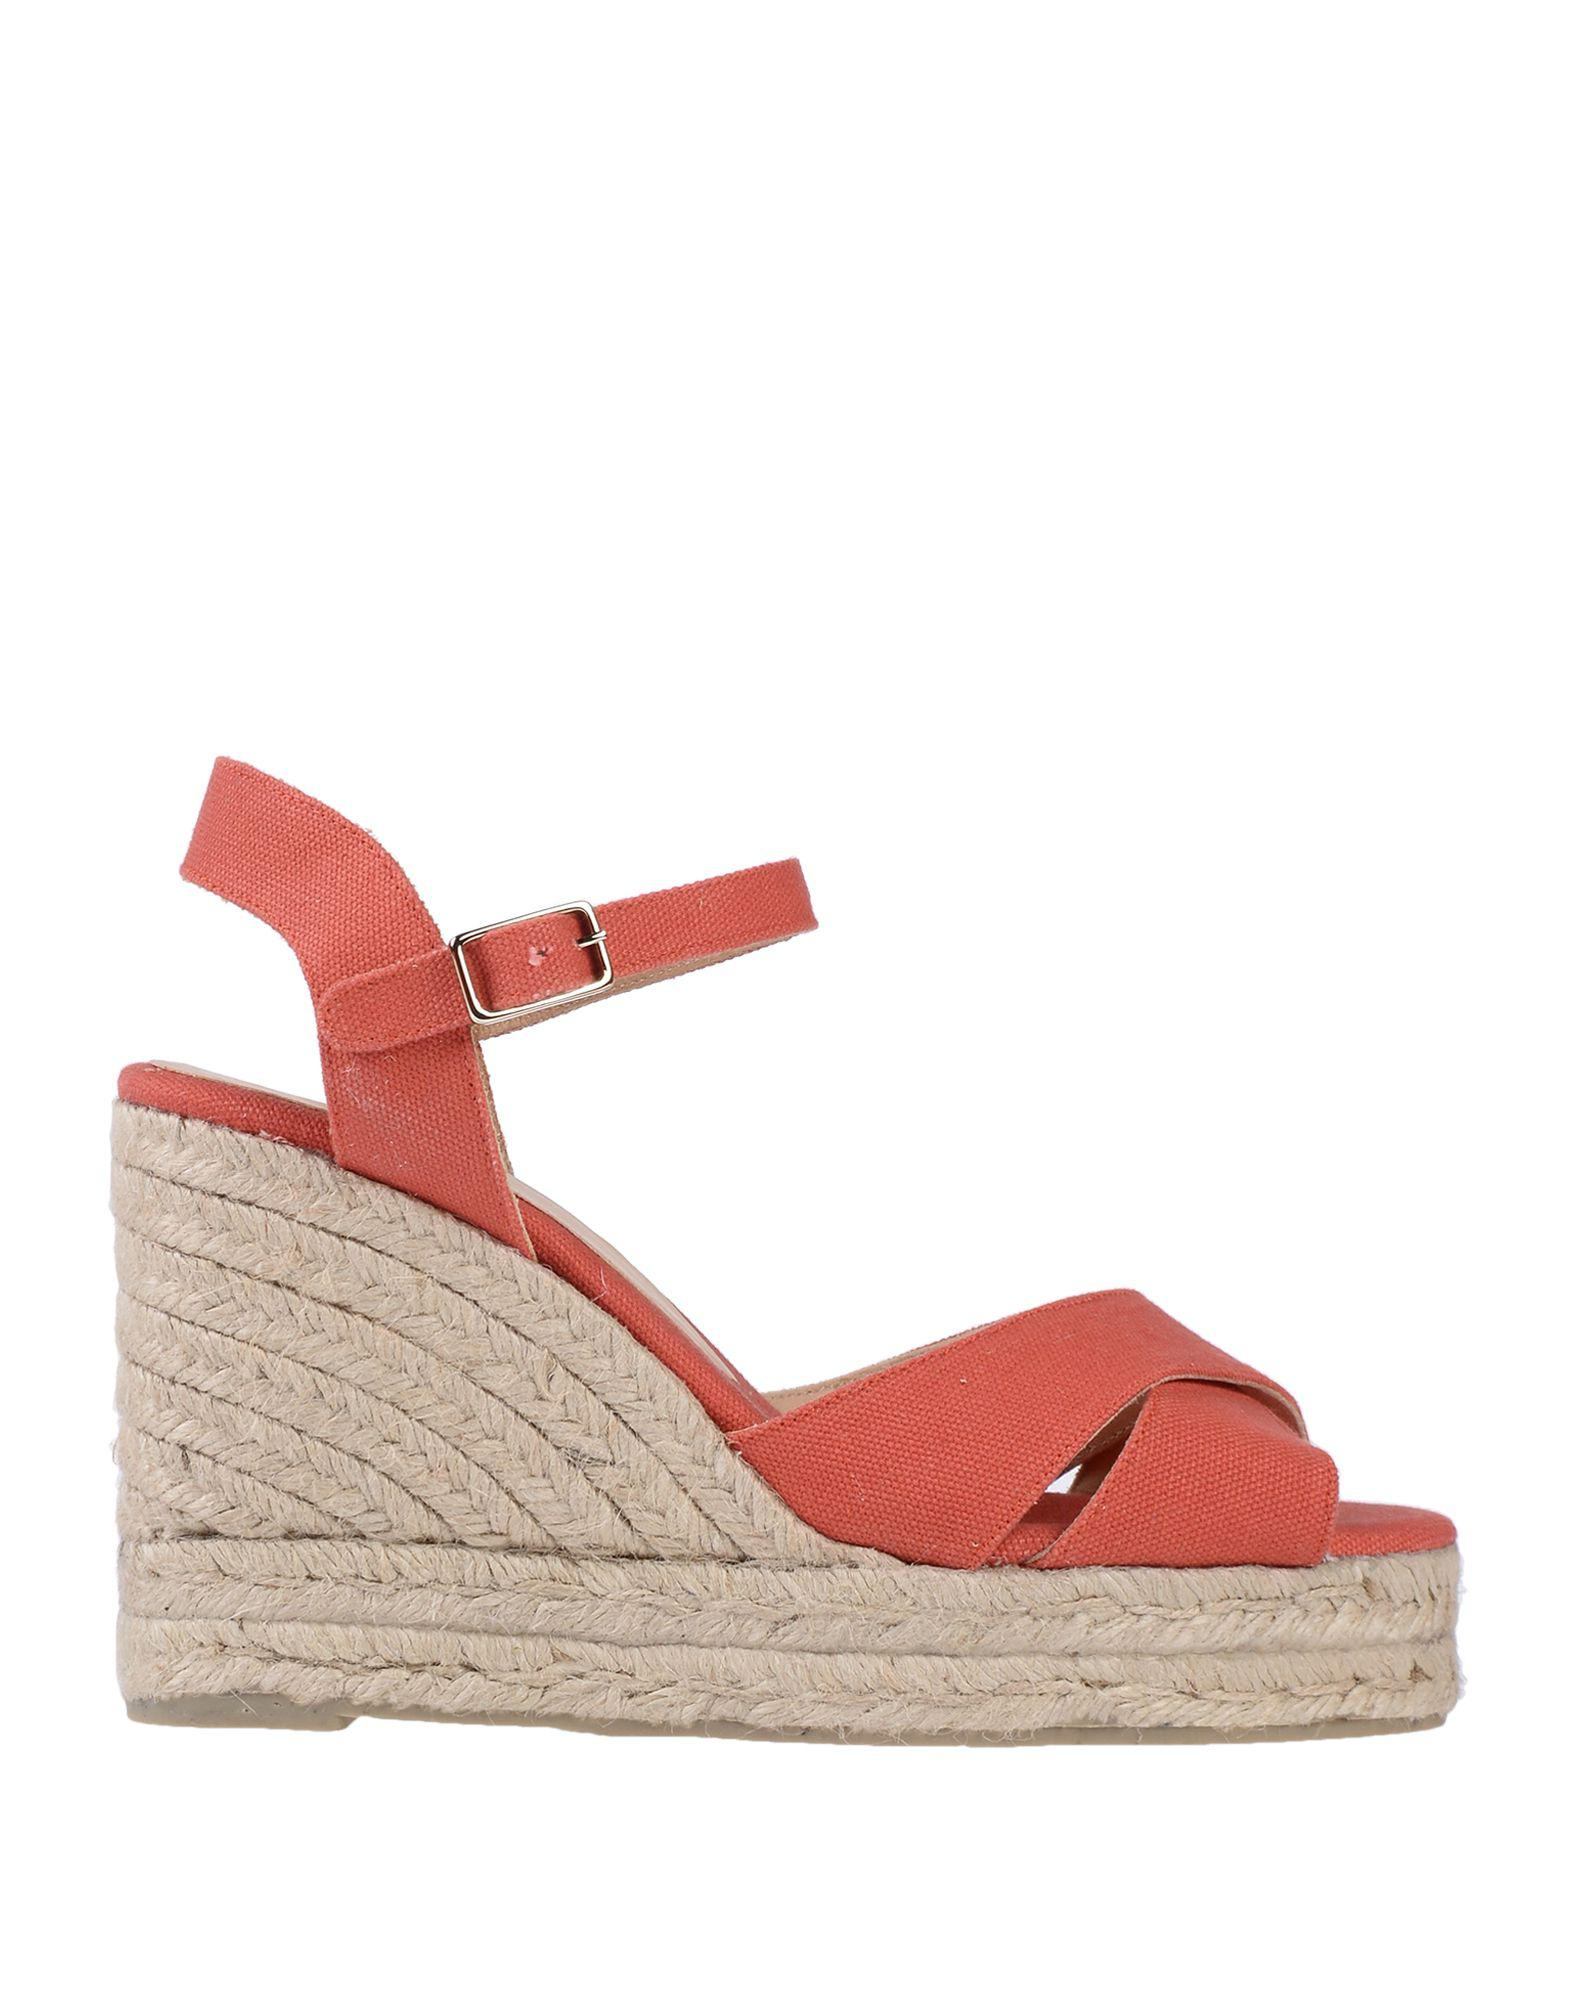 018541eeaa0 Castaner. Women s Sandals. £74 From YOOX. Free shipping with YOOX on ...